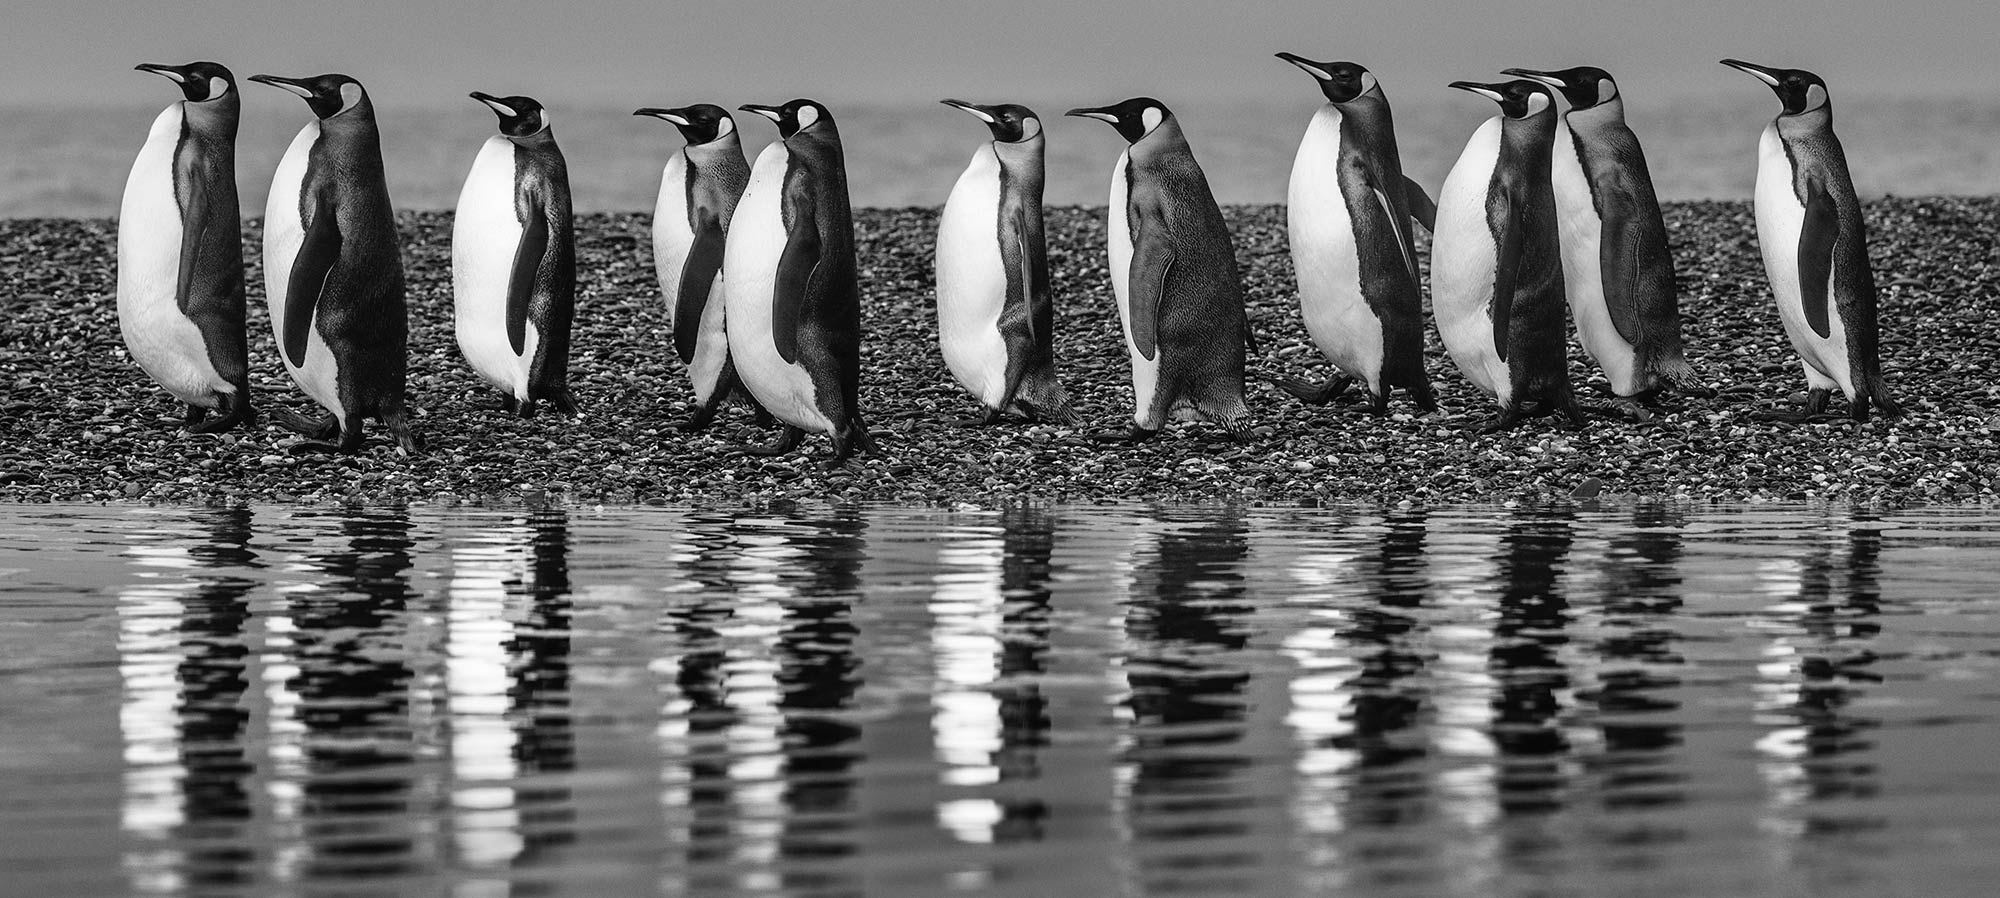 David Yarrow - Oceans-11 - Leonhard's Gallery